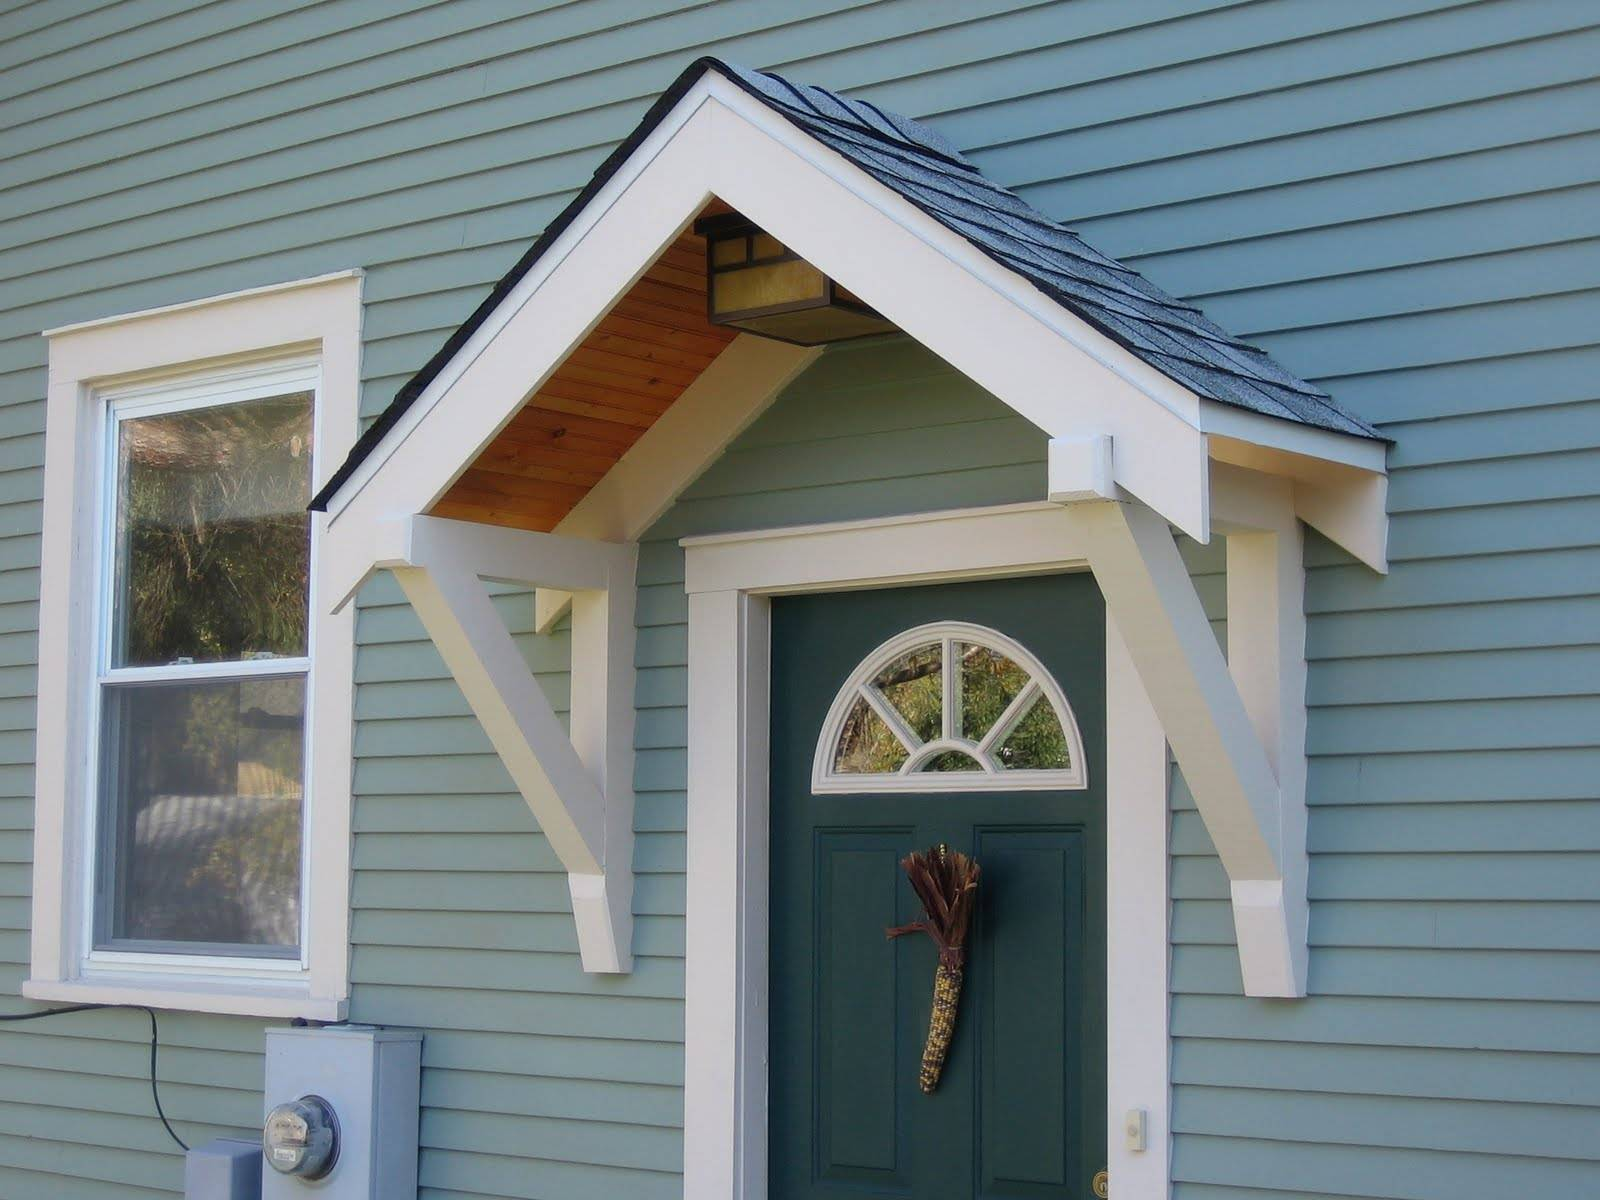 Ideas Porch Awning Pinterest Door Canopy House Plans 88379